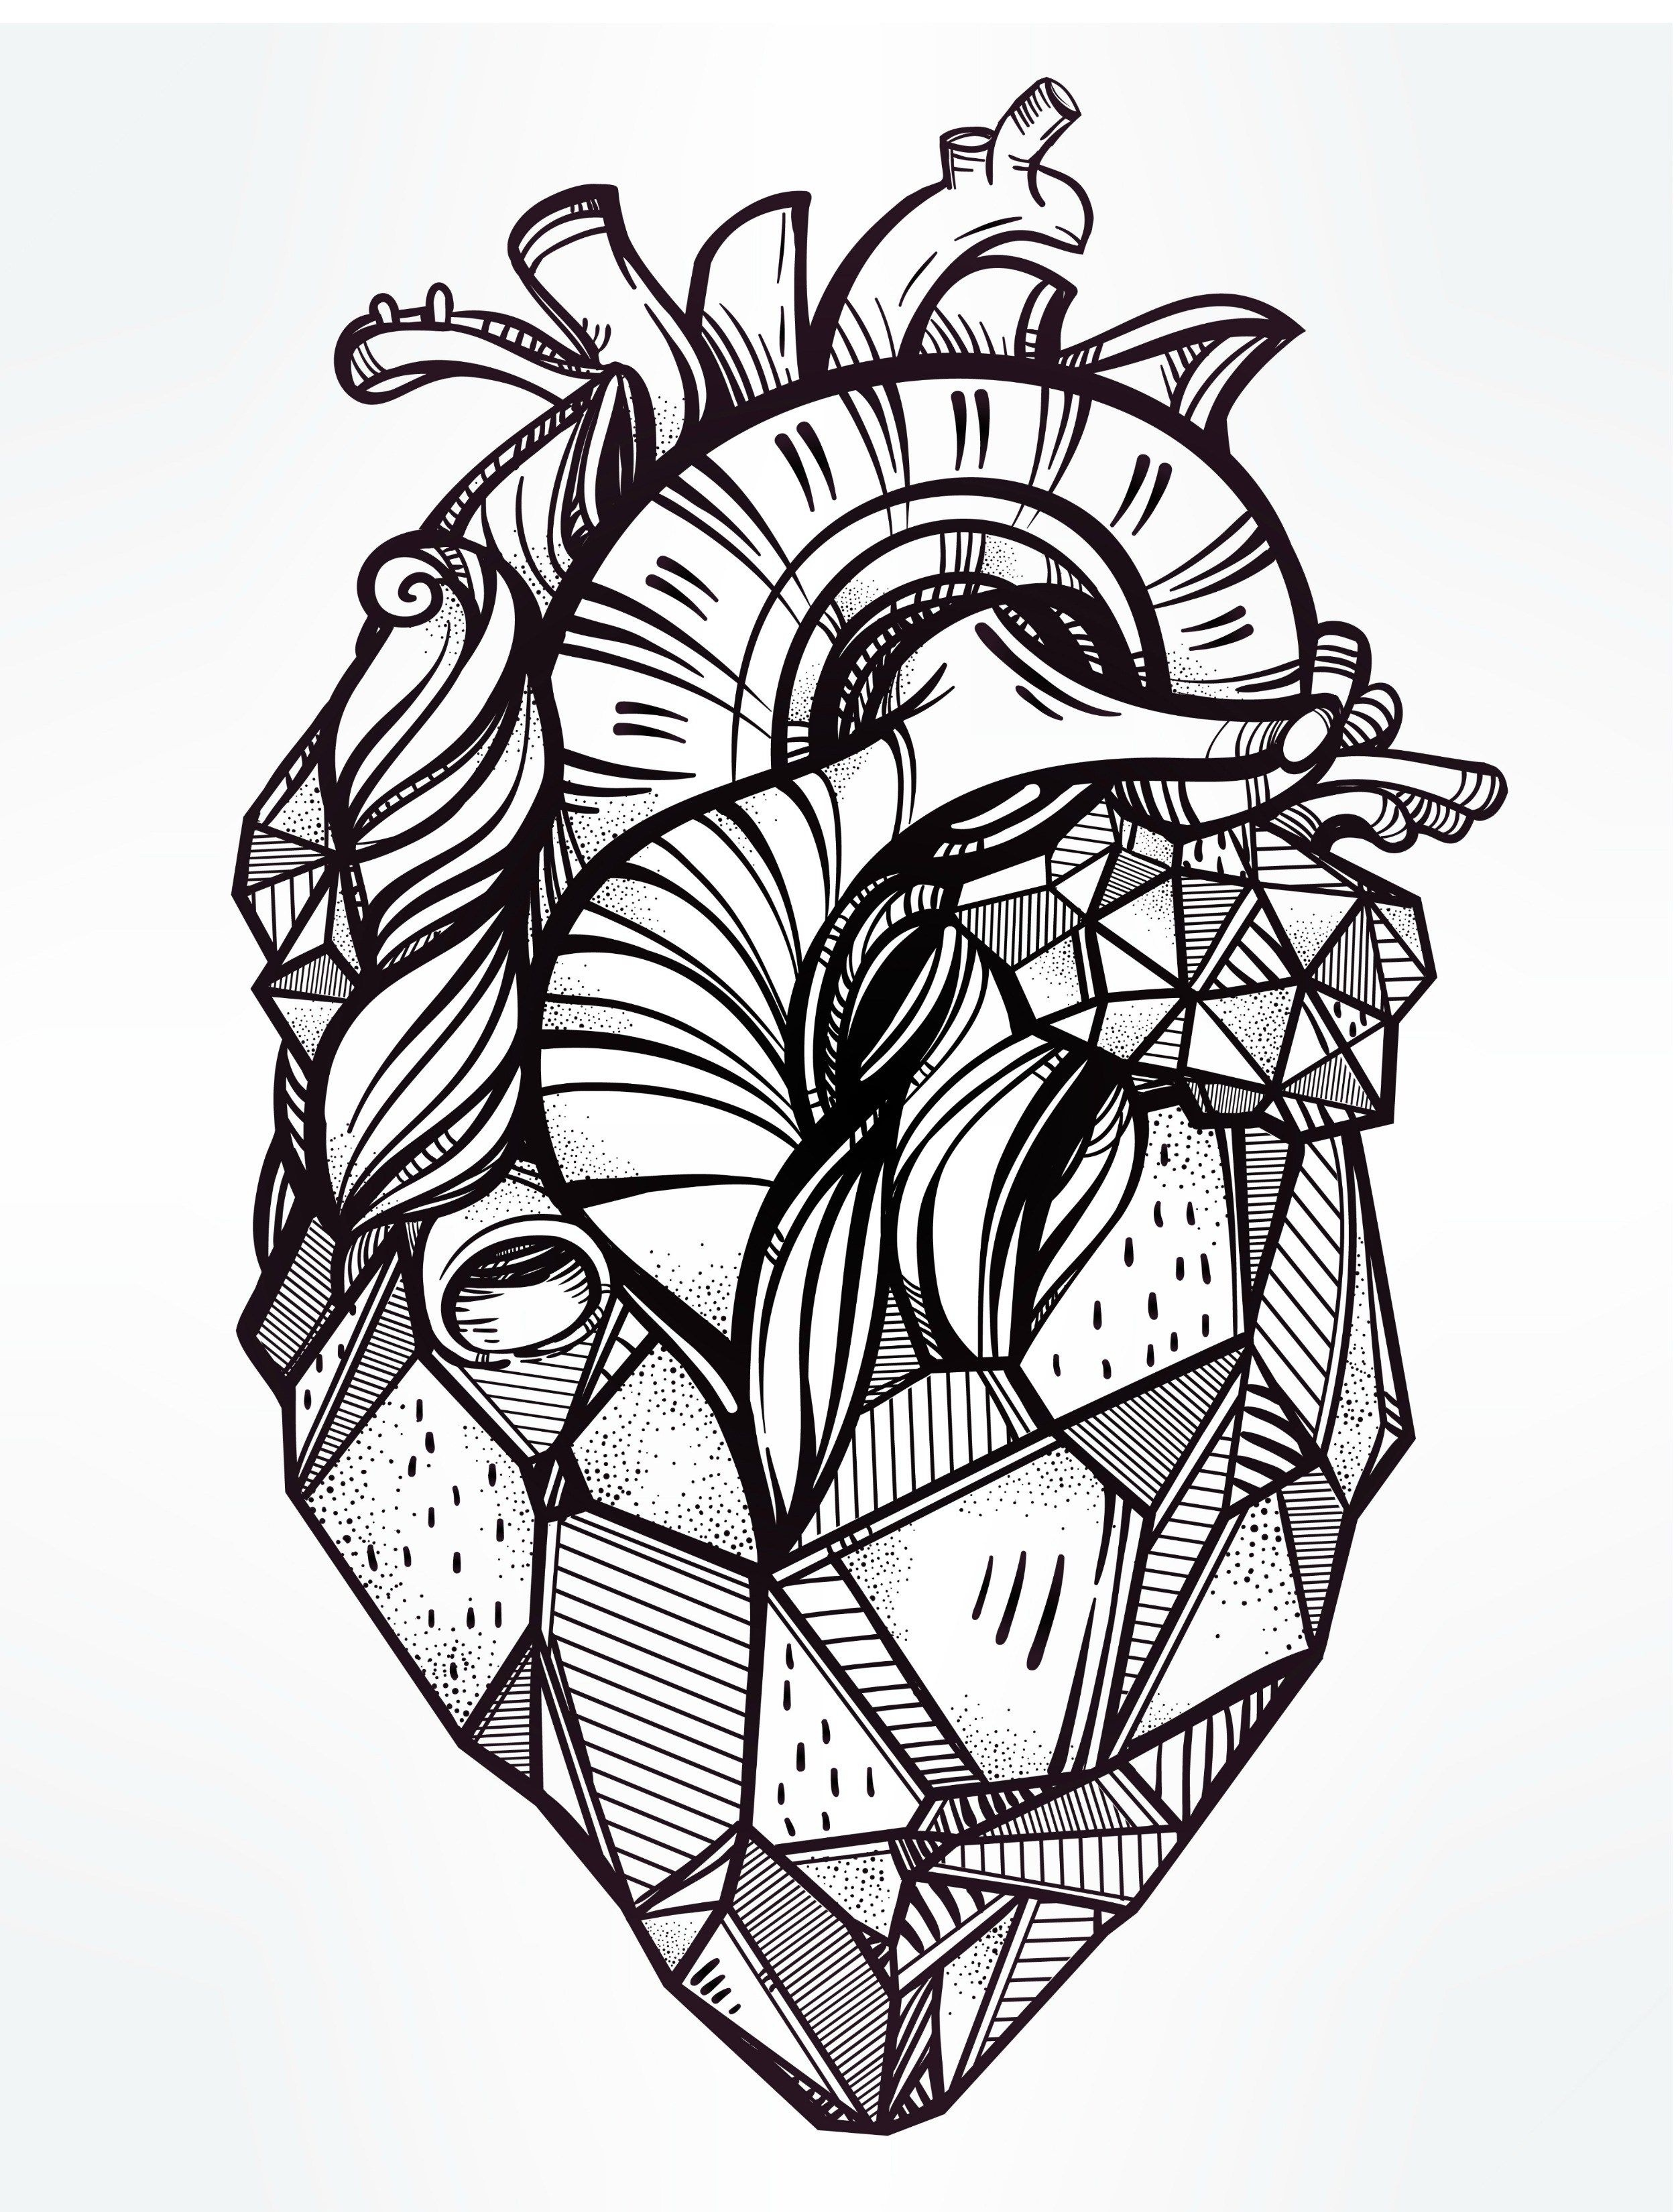 20 Free Printable Valentines Adult Coloring Pages   Adult Coloring - Free Printable Coloring Cards For Adults